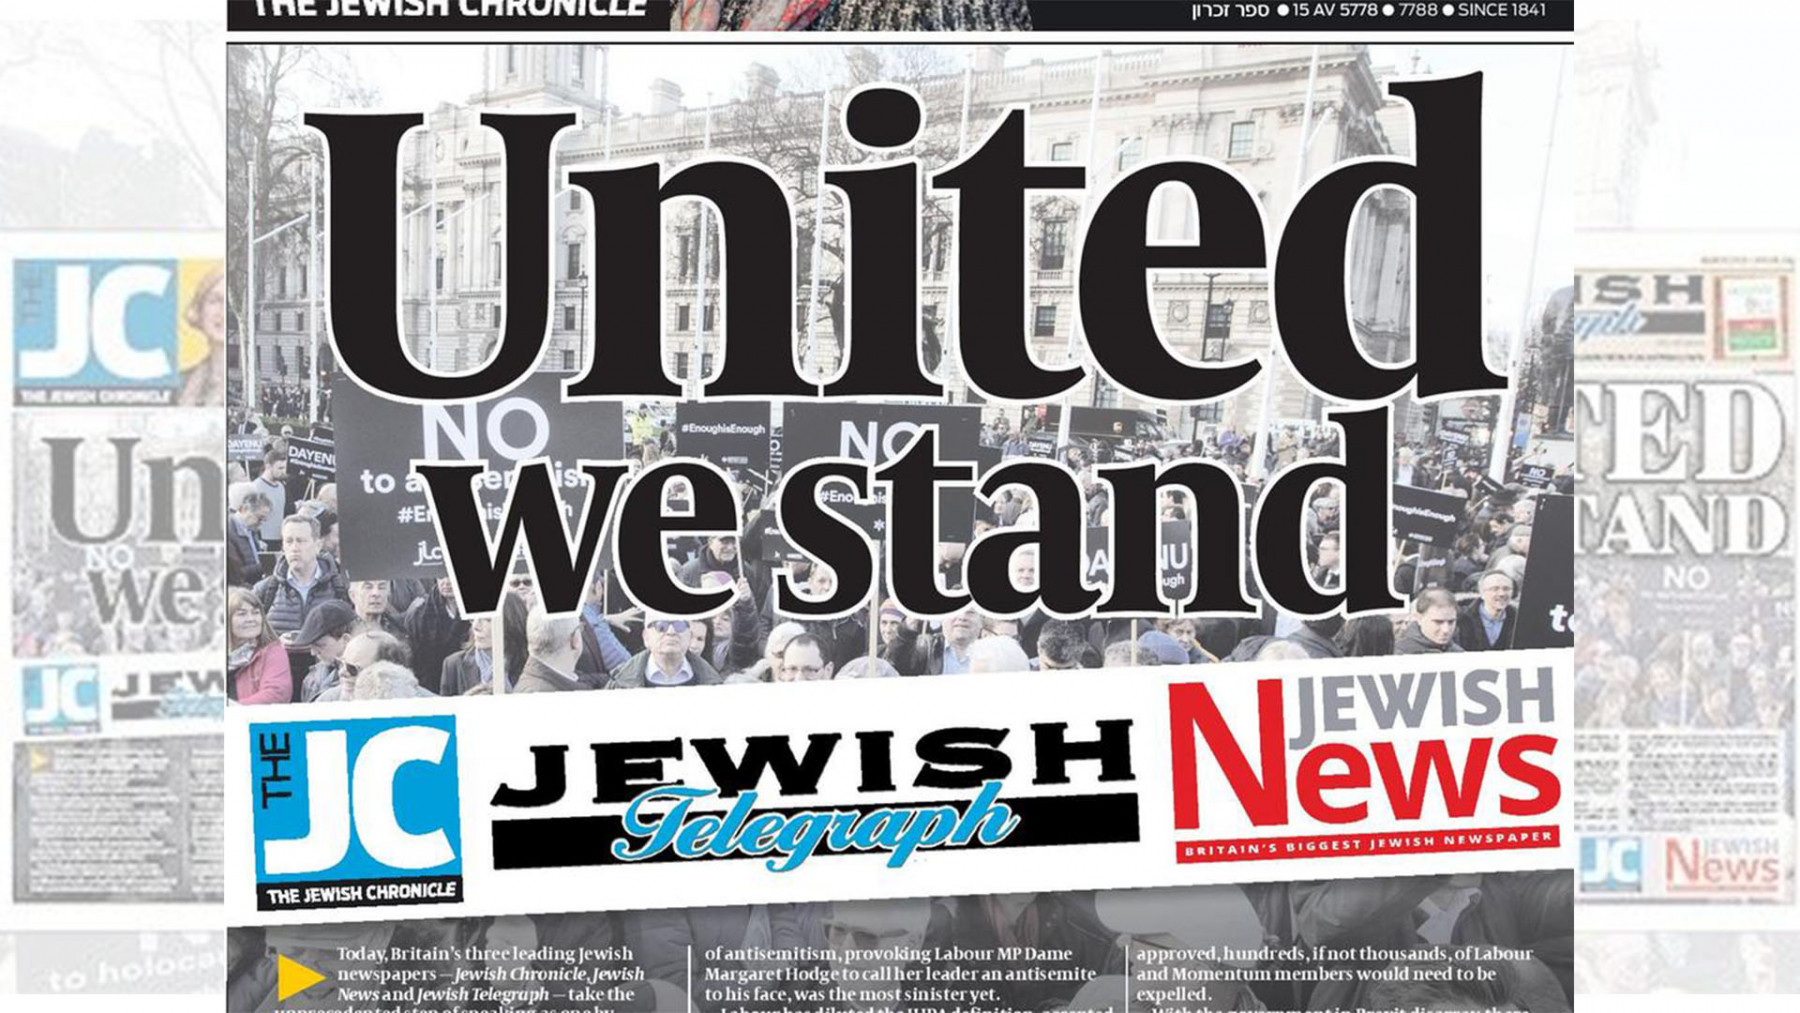 In joint editorial, UK Jewish newspapers warn Corbyn poses 'existential threat'